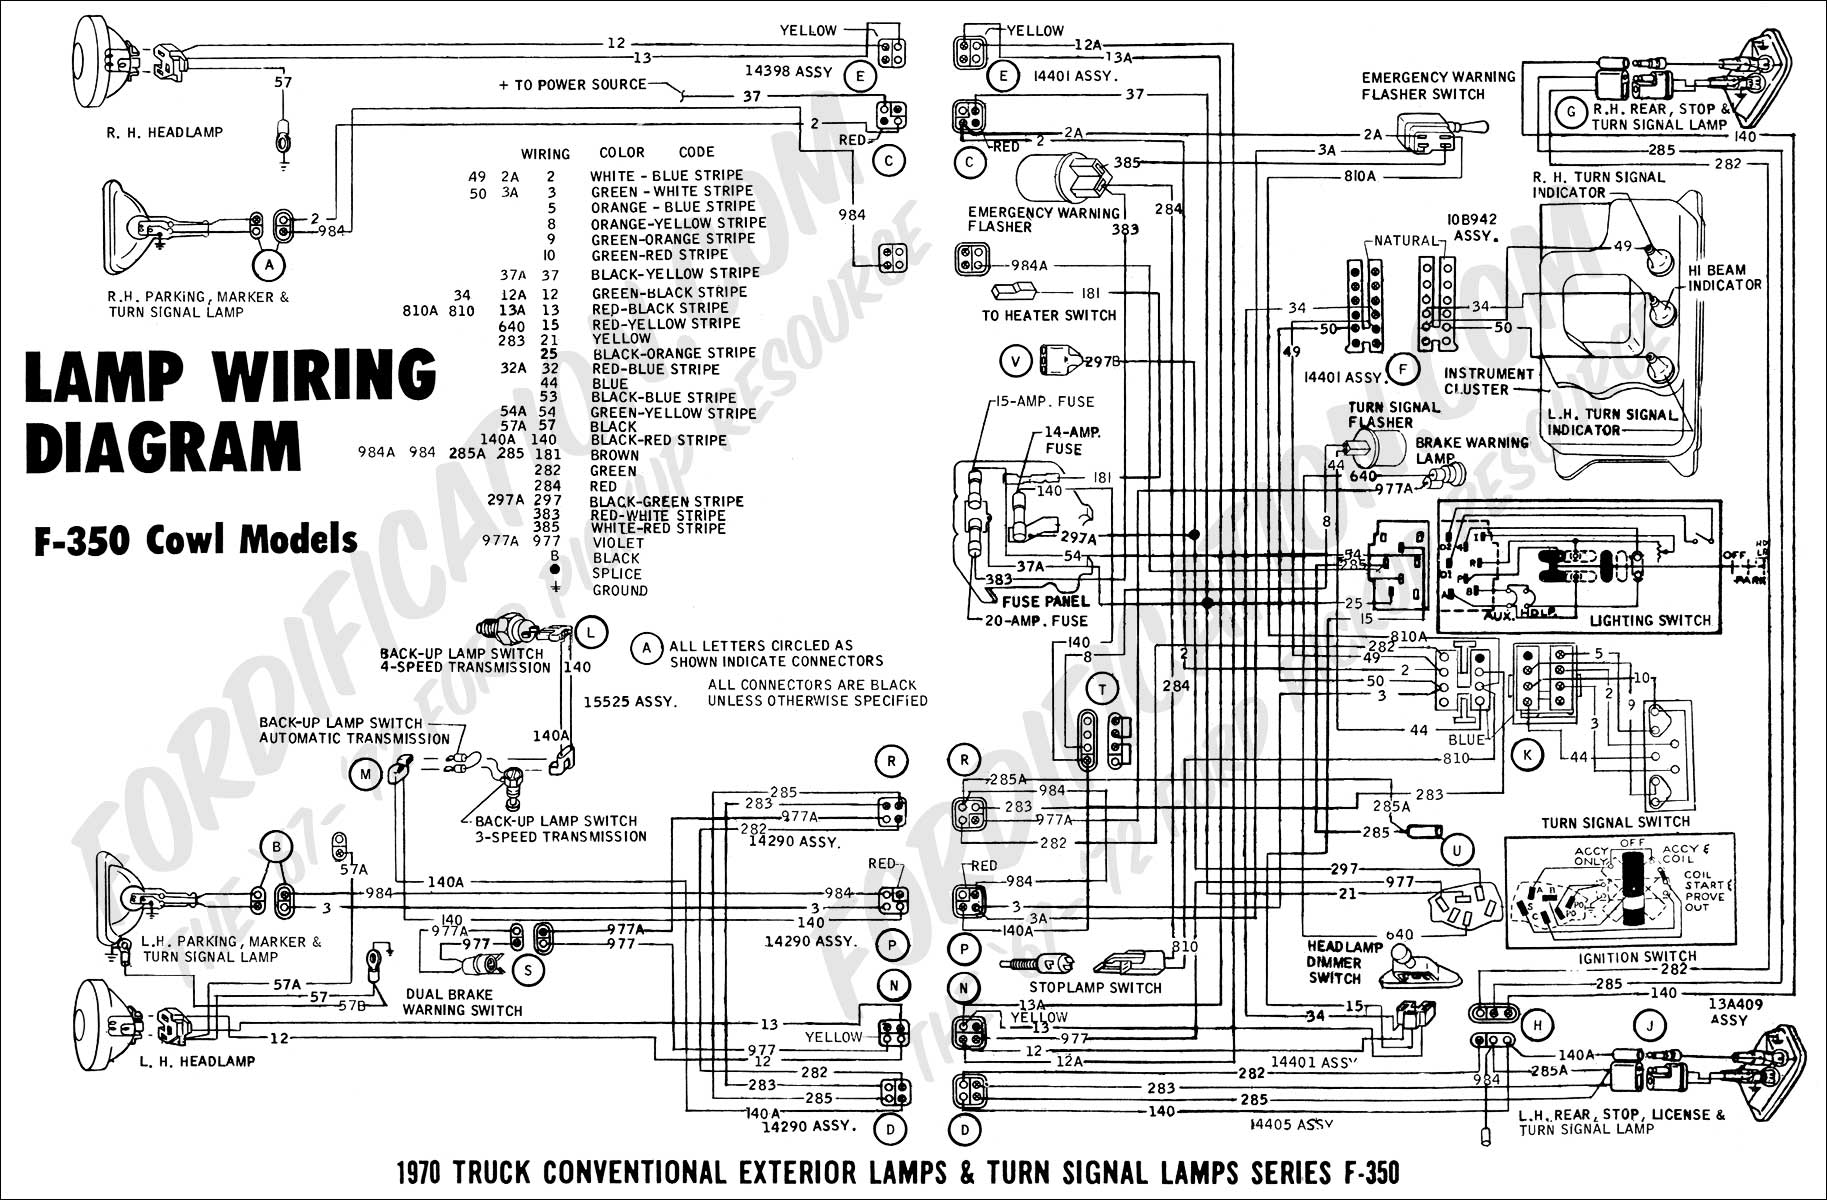 wiring diagram 70F350cowl_lights01 wiring diagram for 29 ford model a readingrat net ford car wiring diagrams at bayanpartner.co